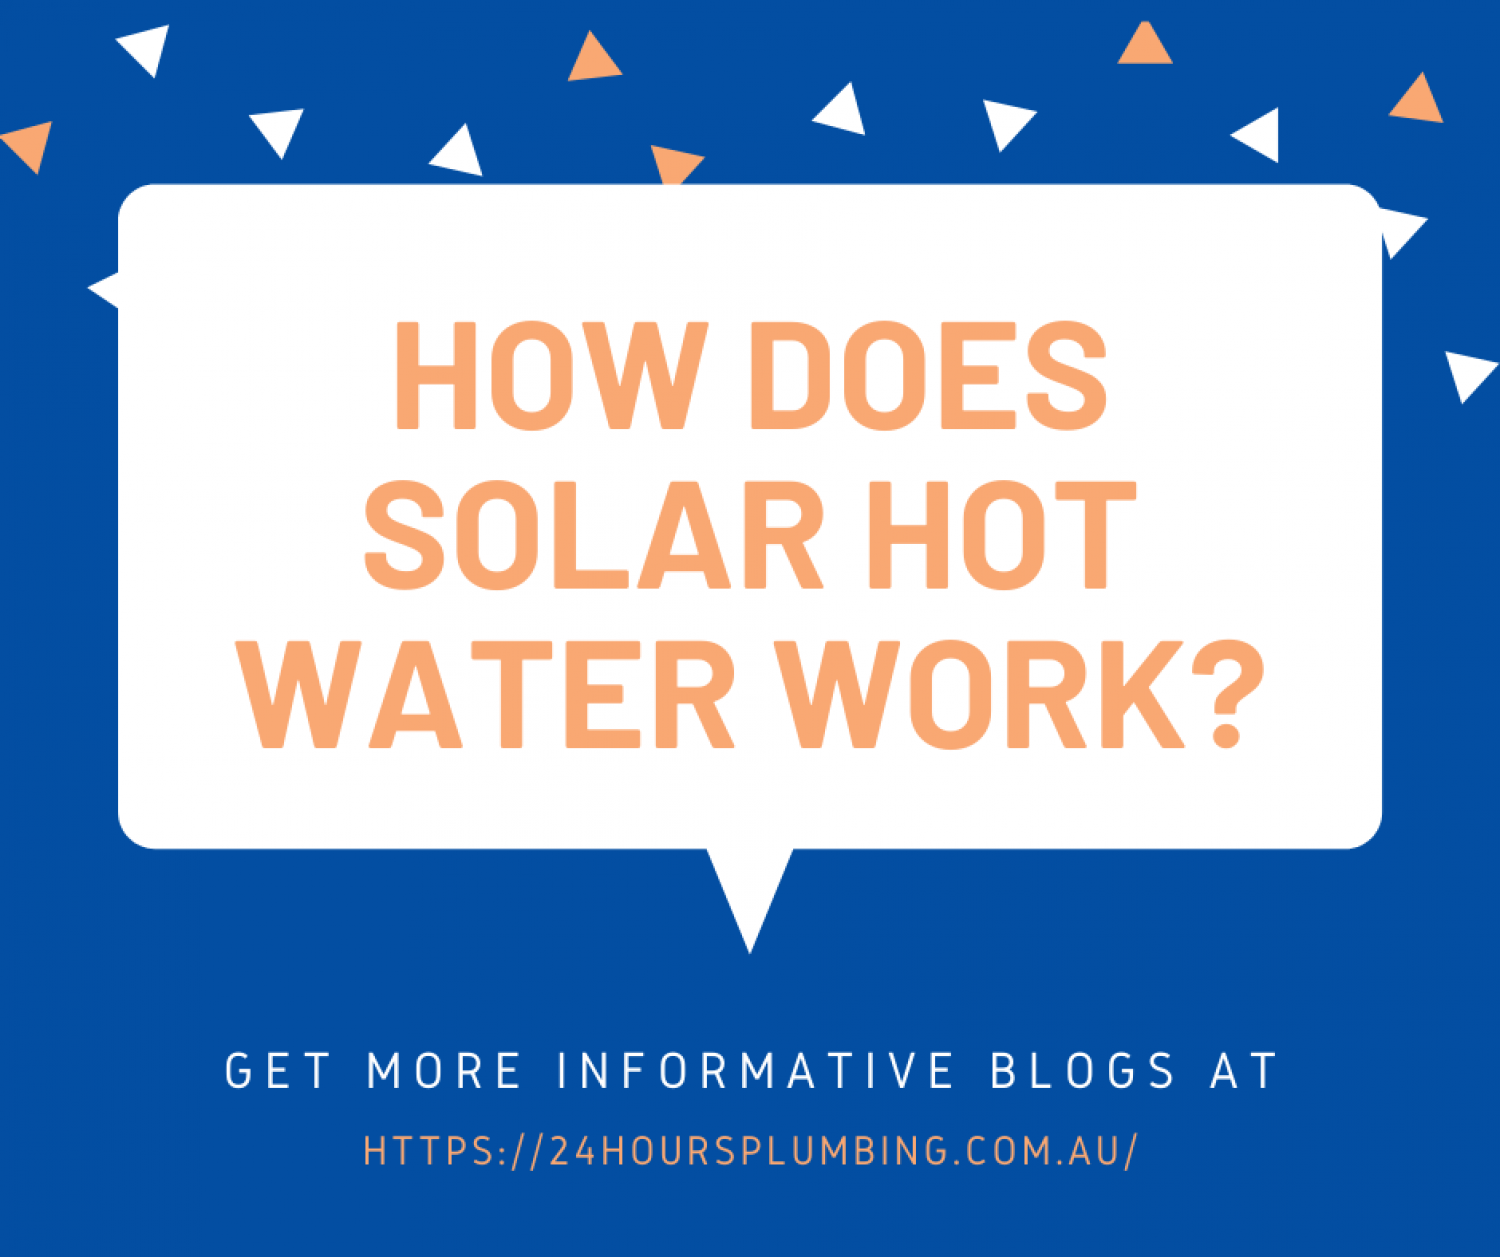 How Does Solar Hot Water Work? Infographic